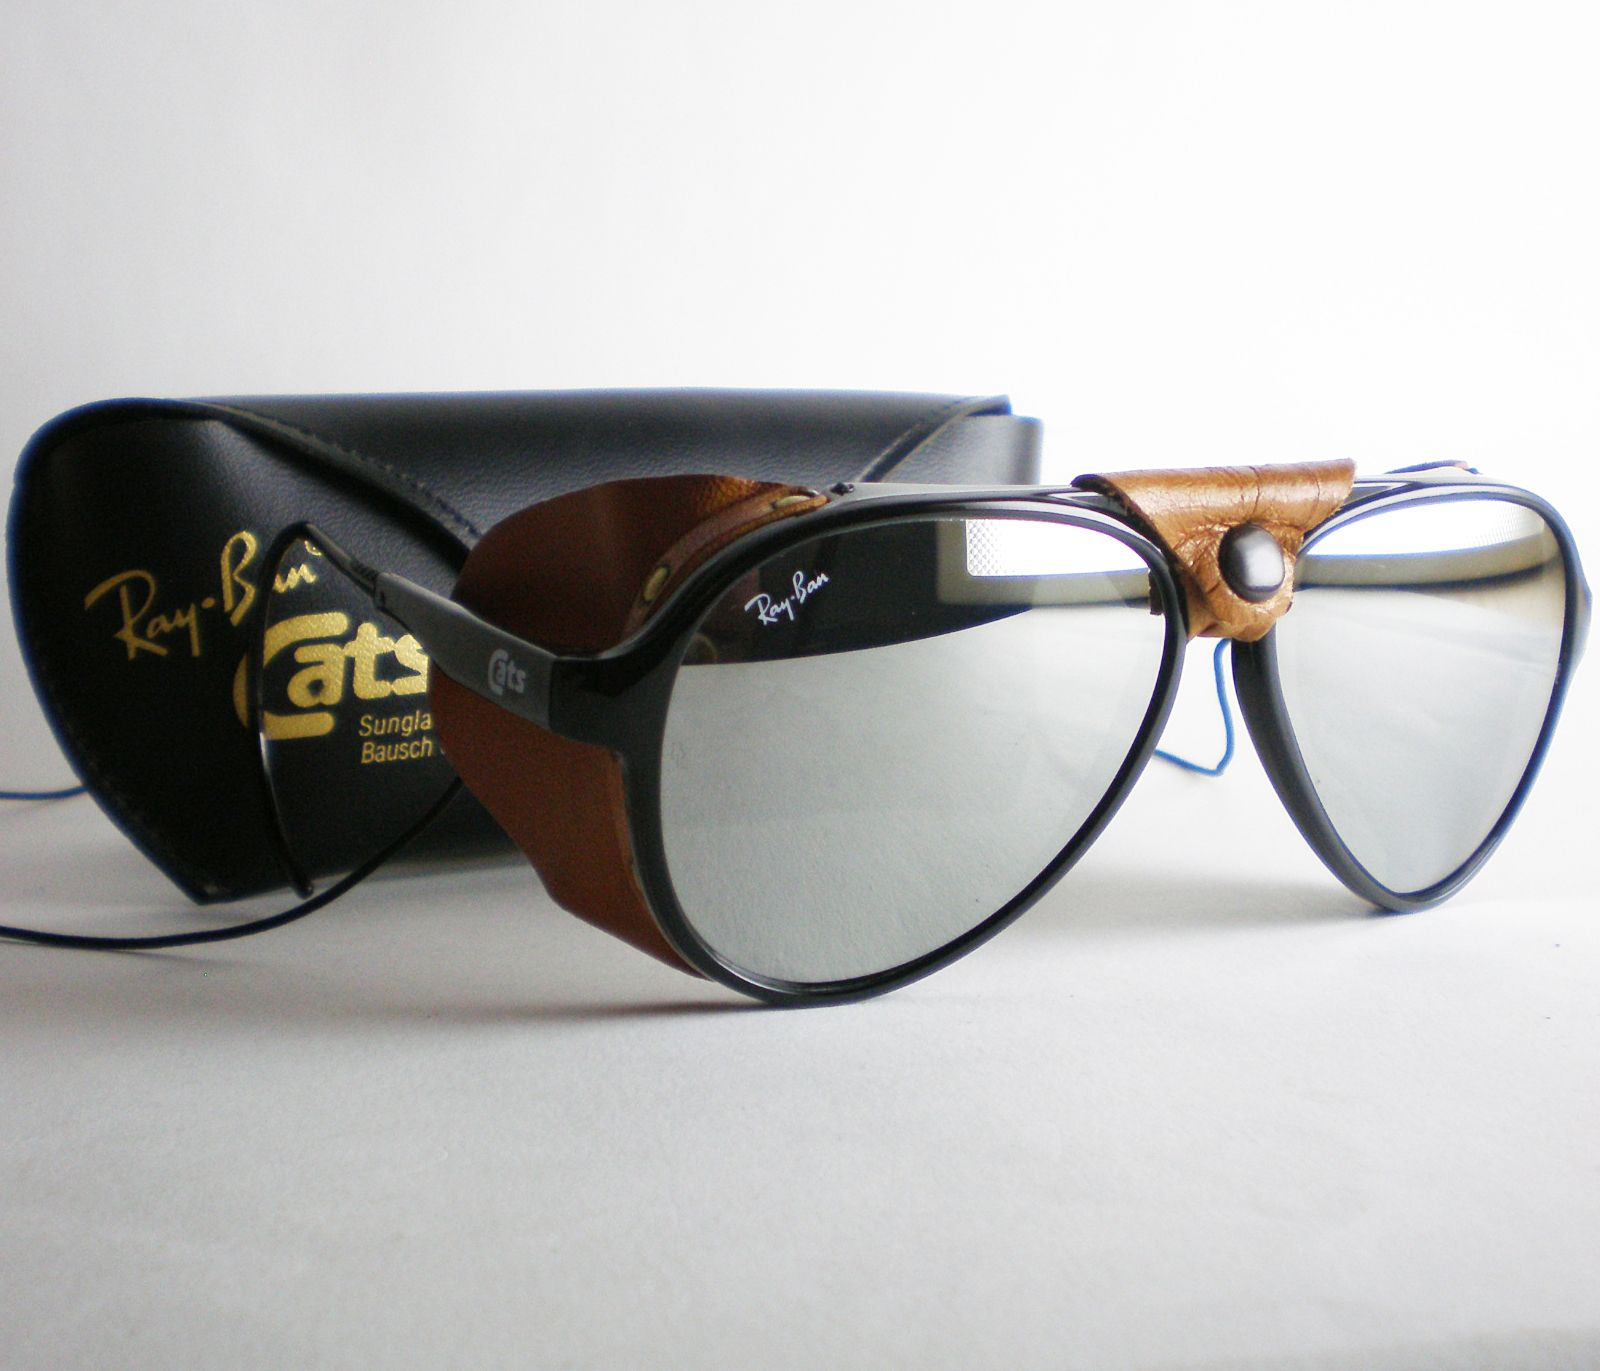 fb214a7abfd Vintage Ray Ban CATS 8000 MIRRORED Sunglasses aviator side shield leathers  black